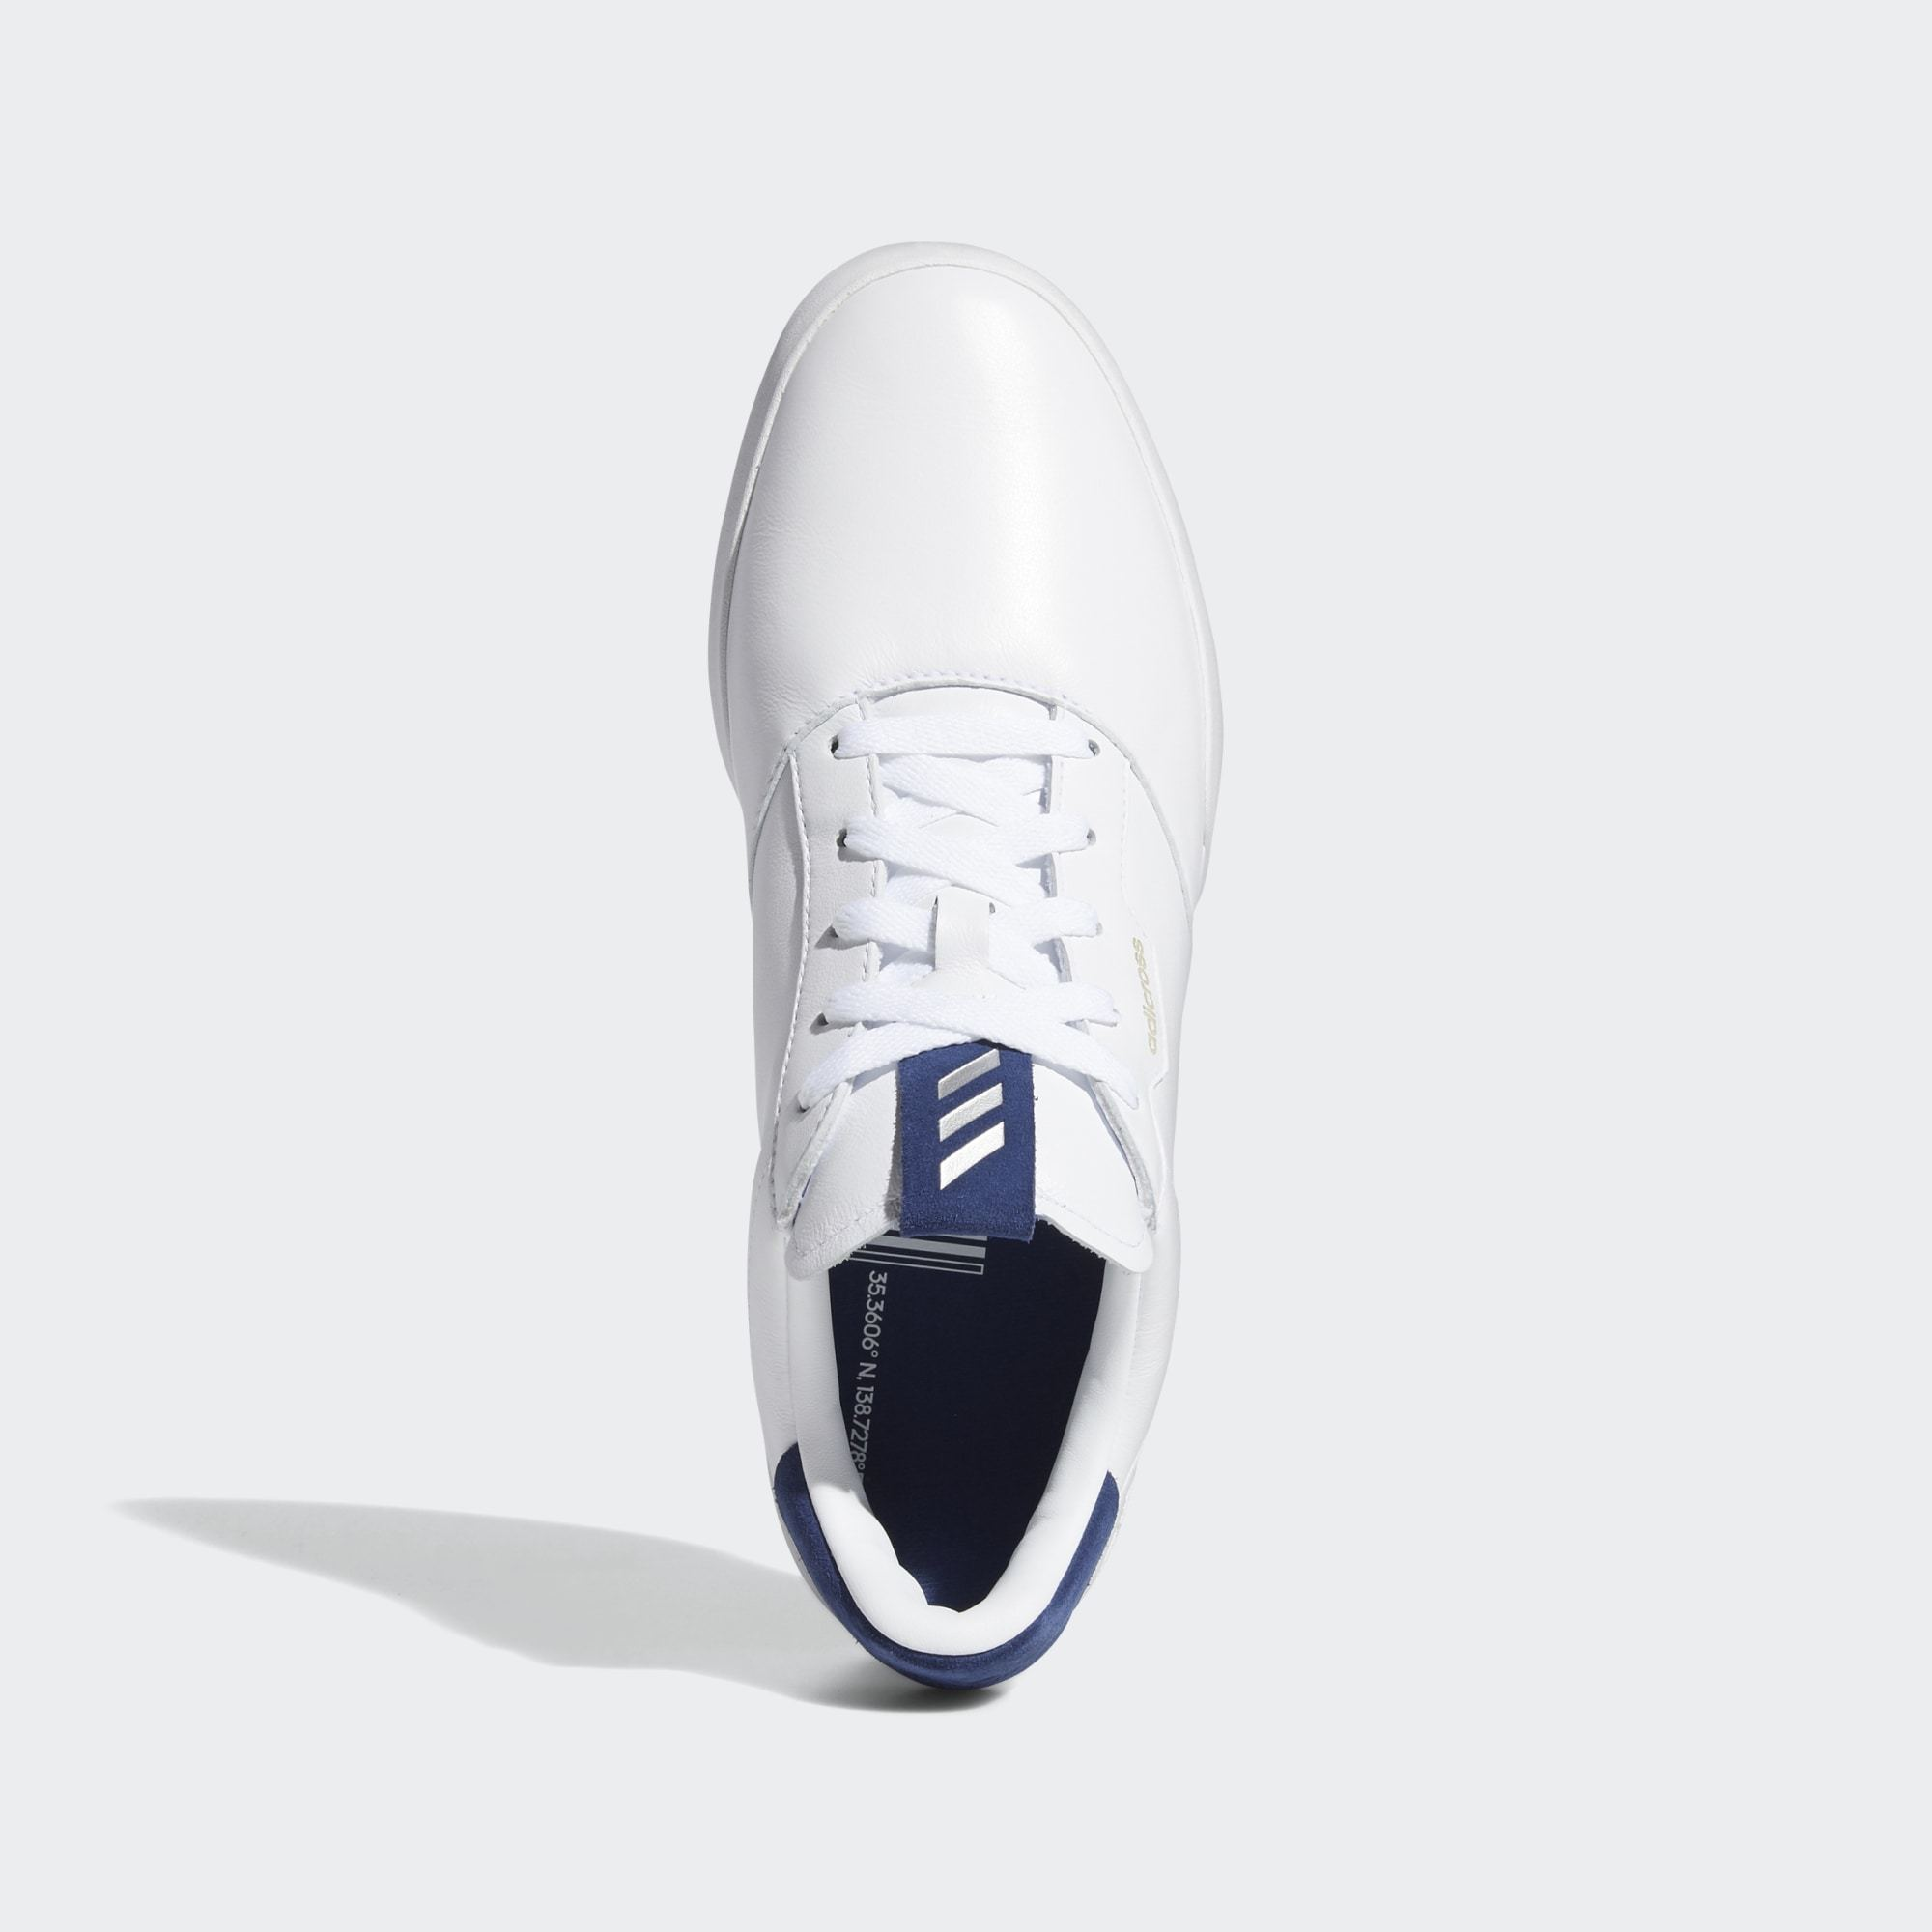 ADIDAS ADICROSS RETRO GOLF SHOES ADIDAS MENS SHOES ADIDAS